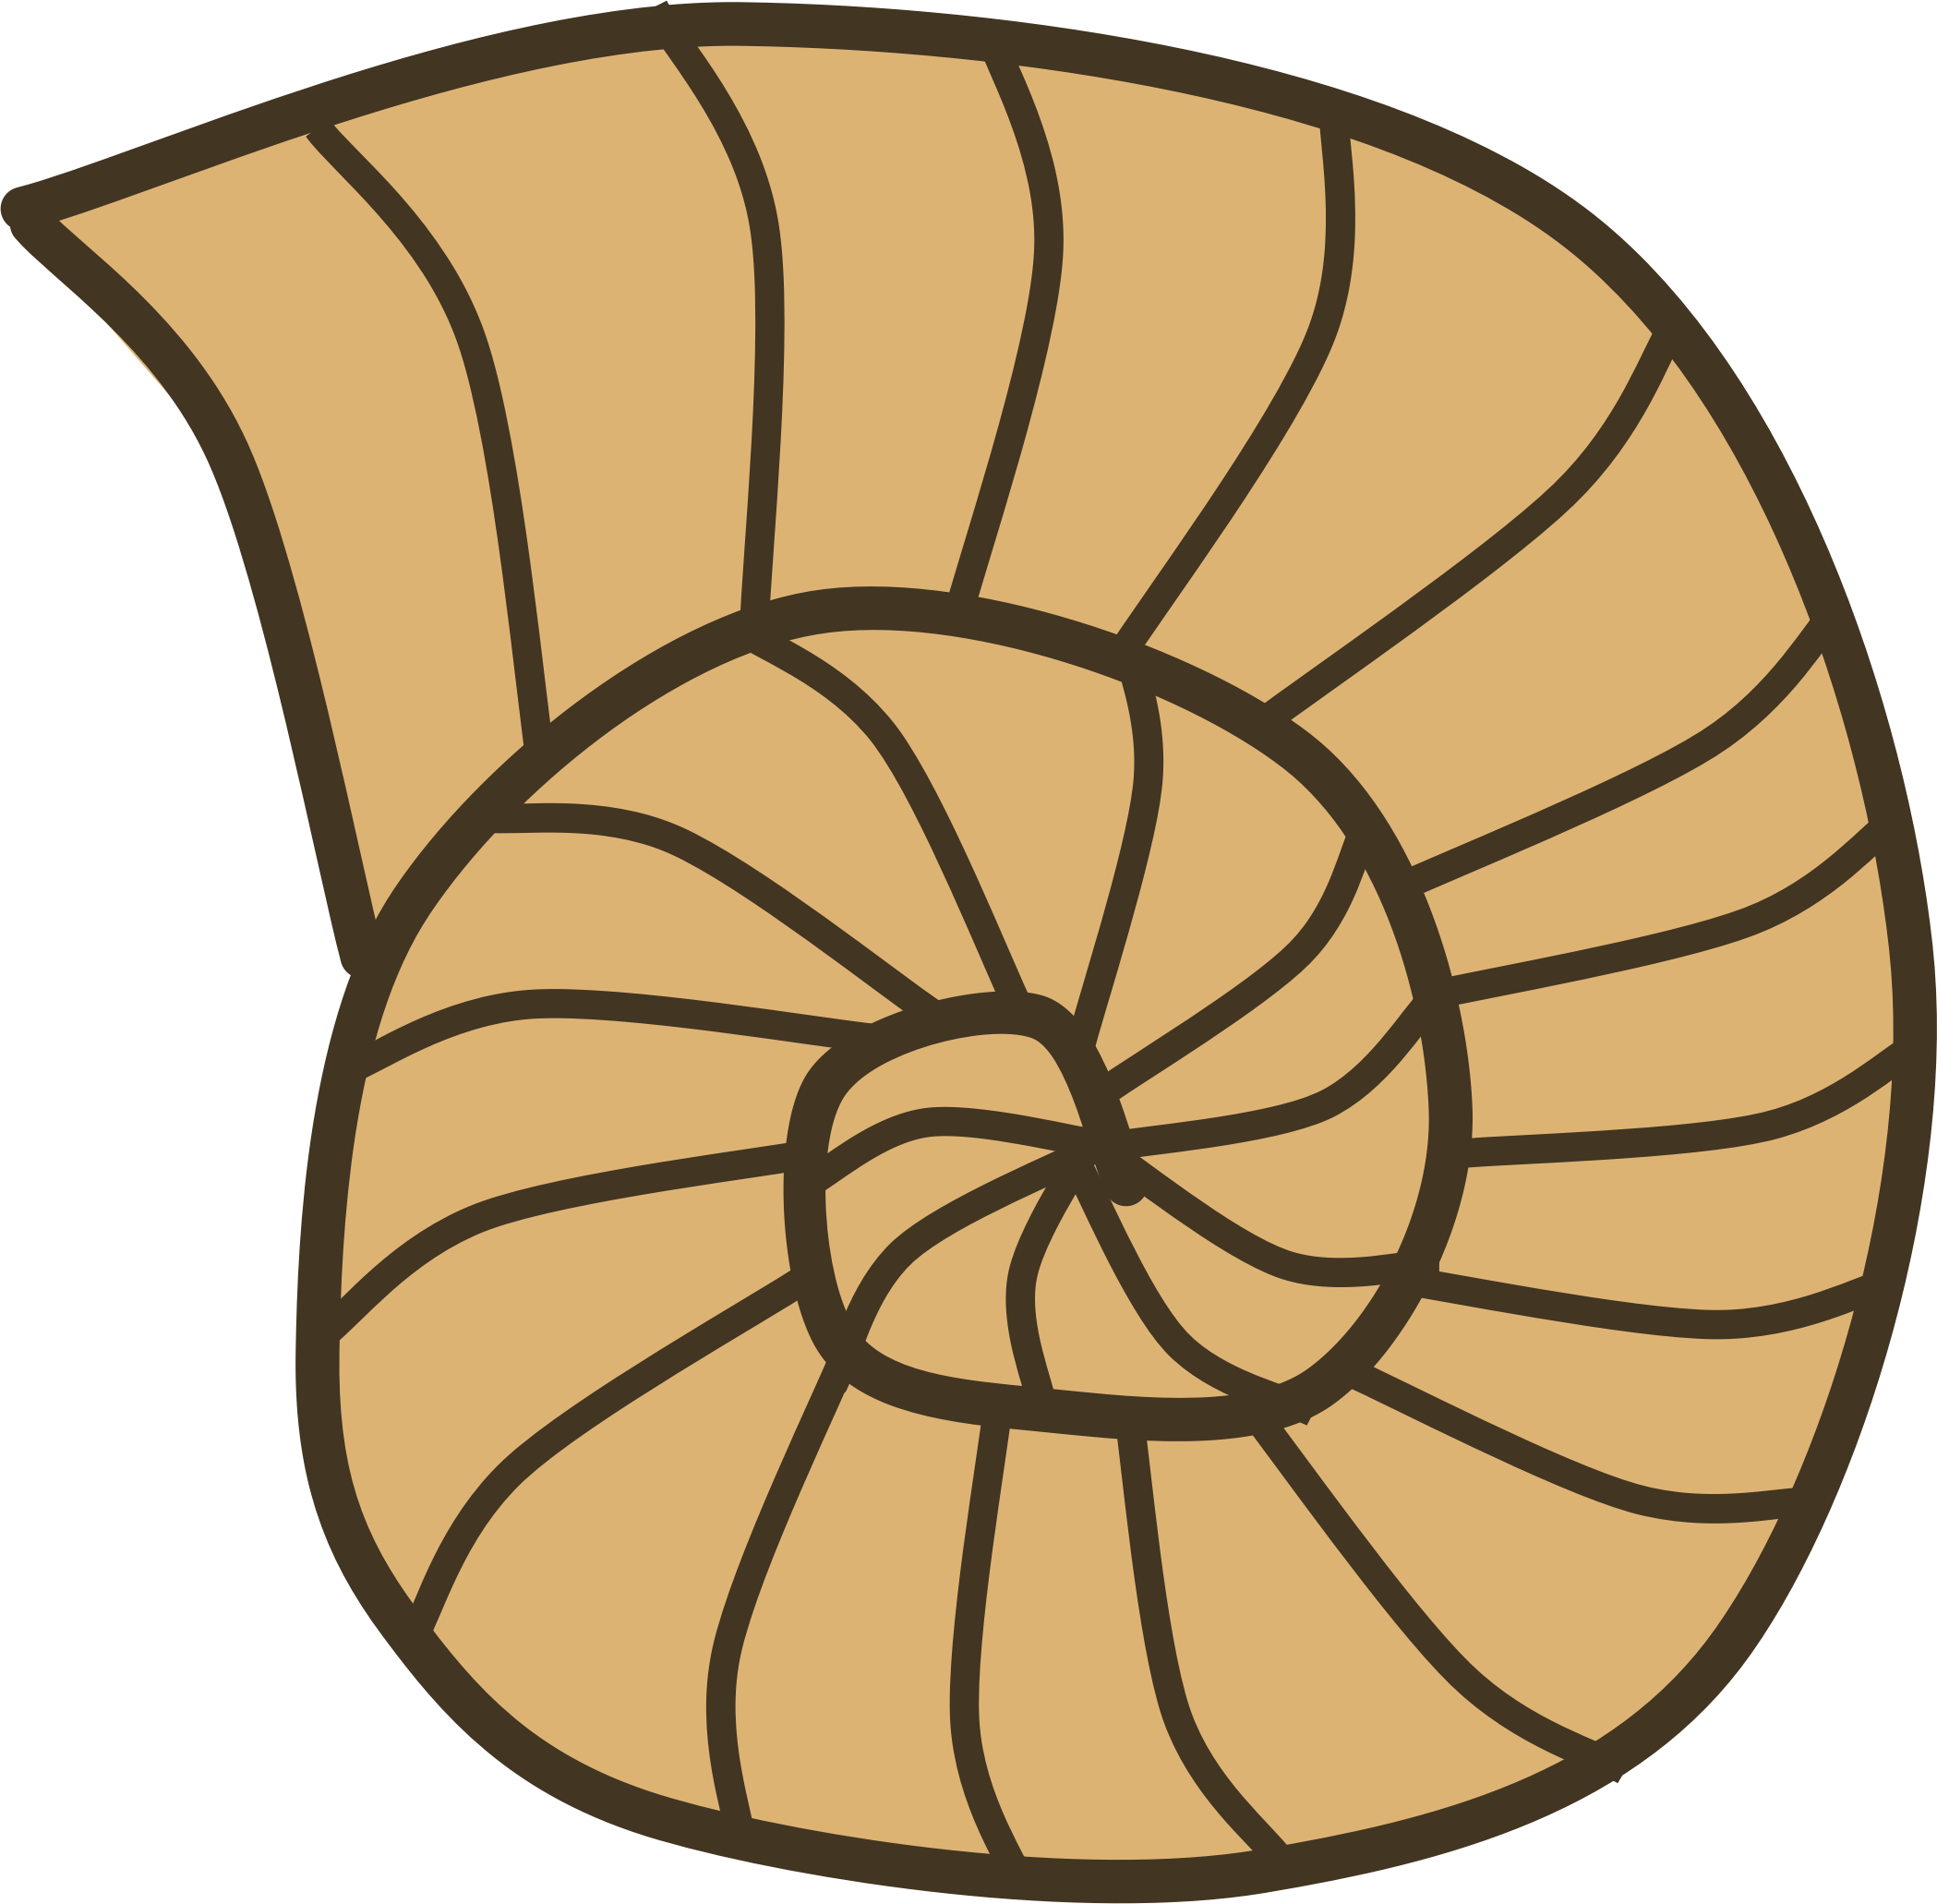 Fossil shell clipart #6